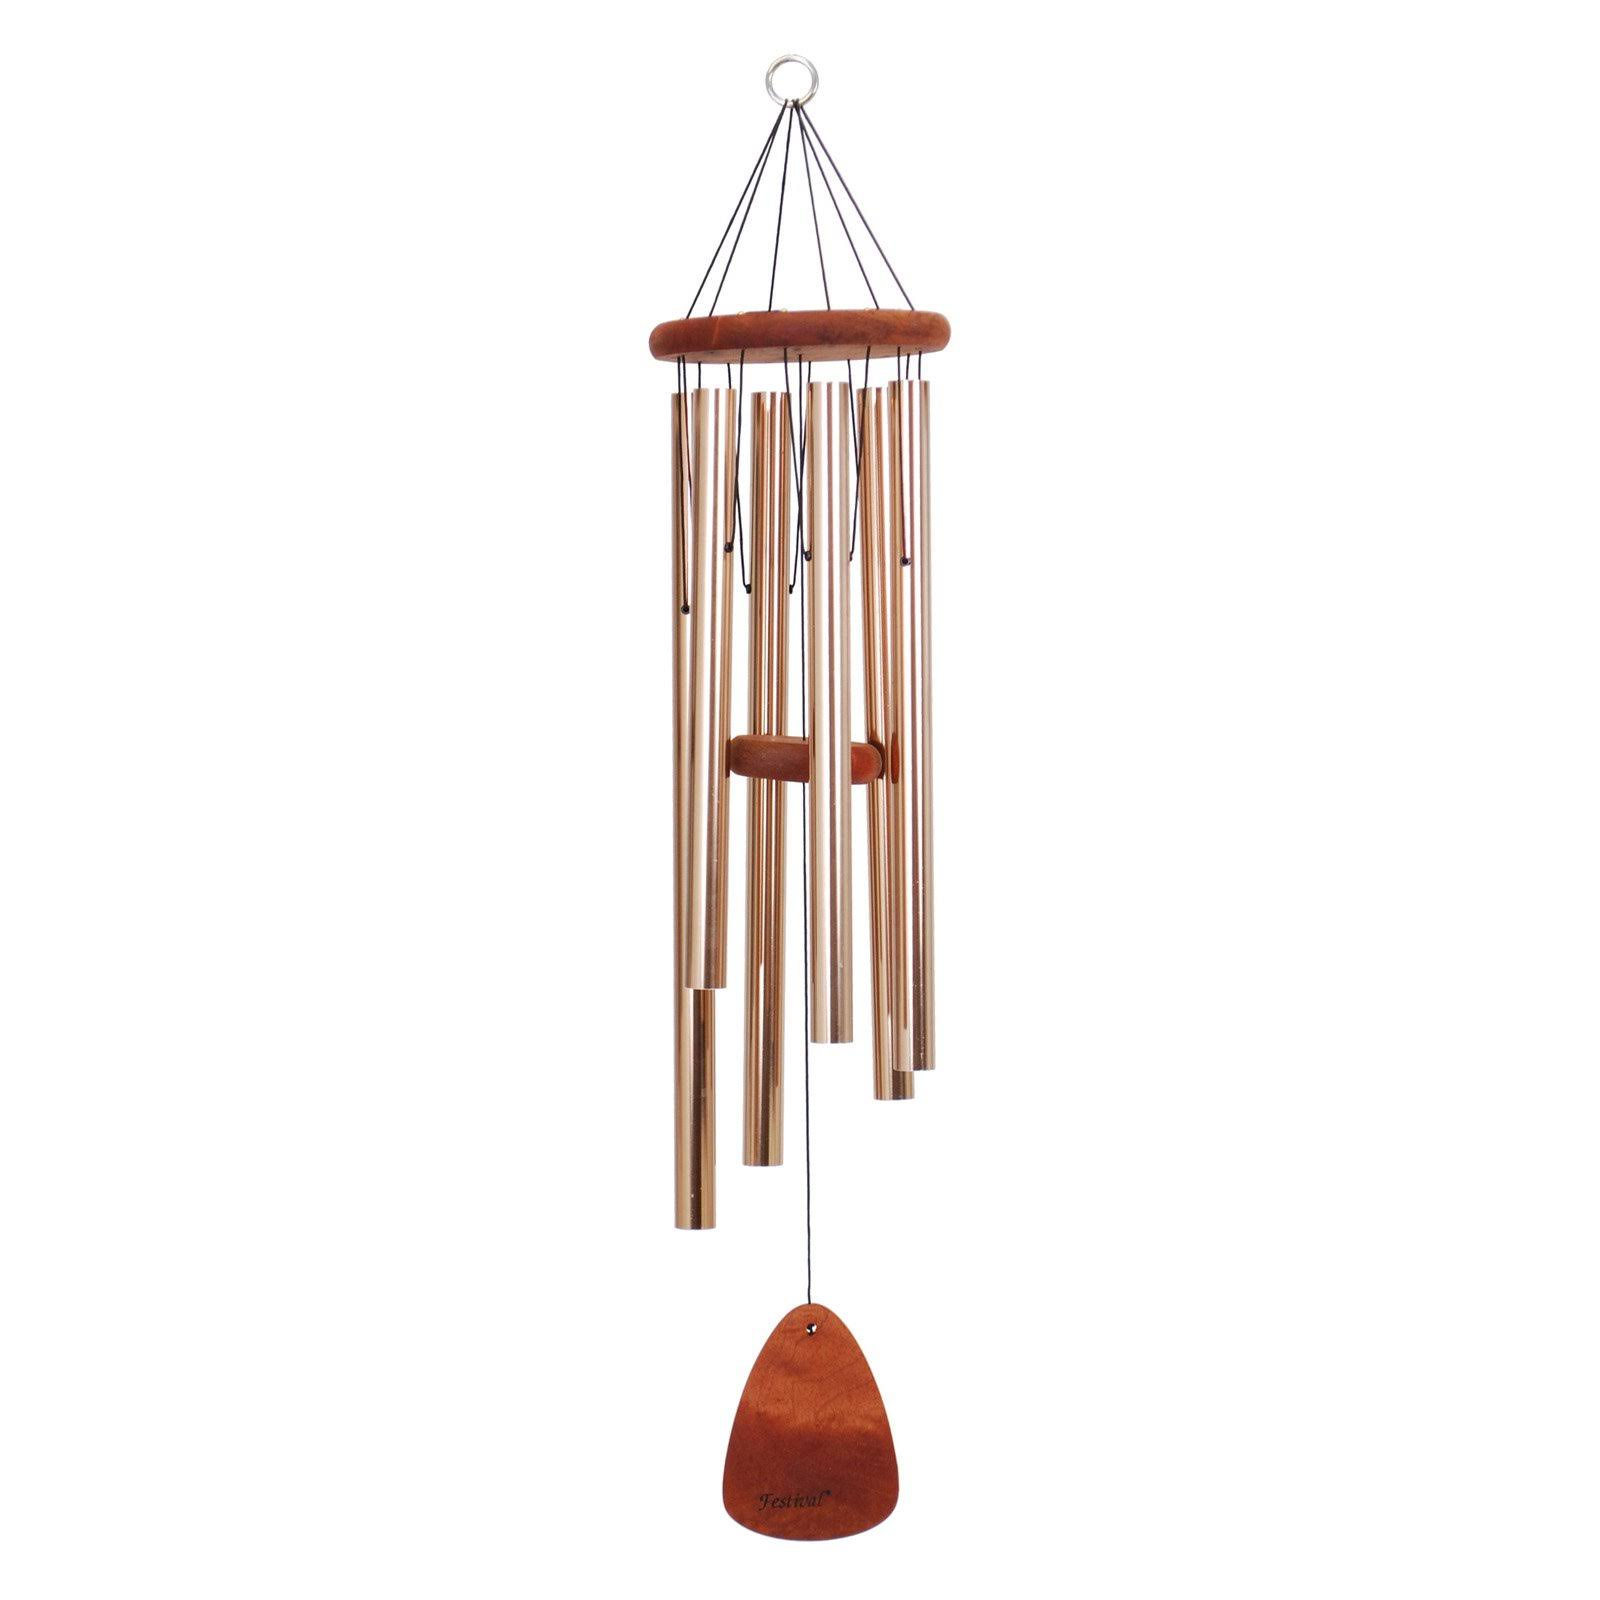 Festival 36 in. Wind Chime